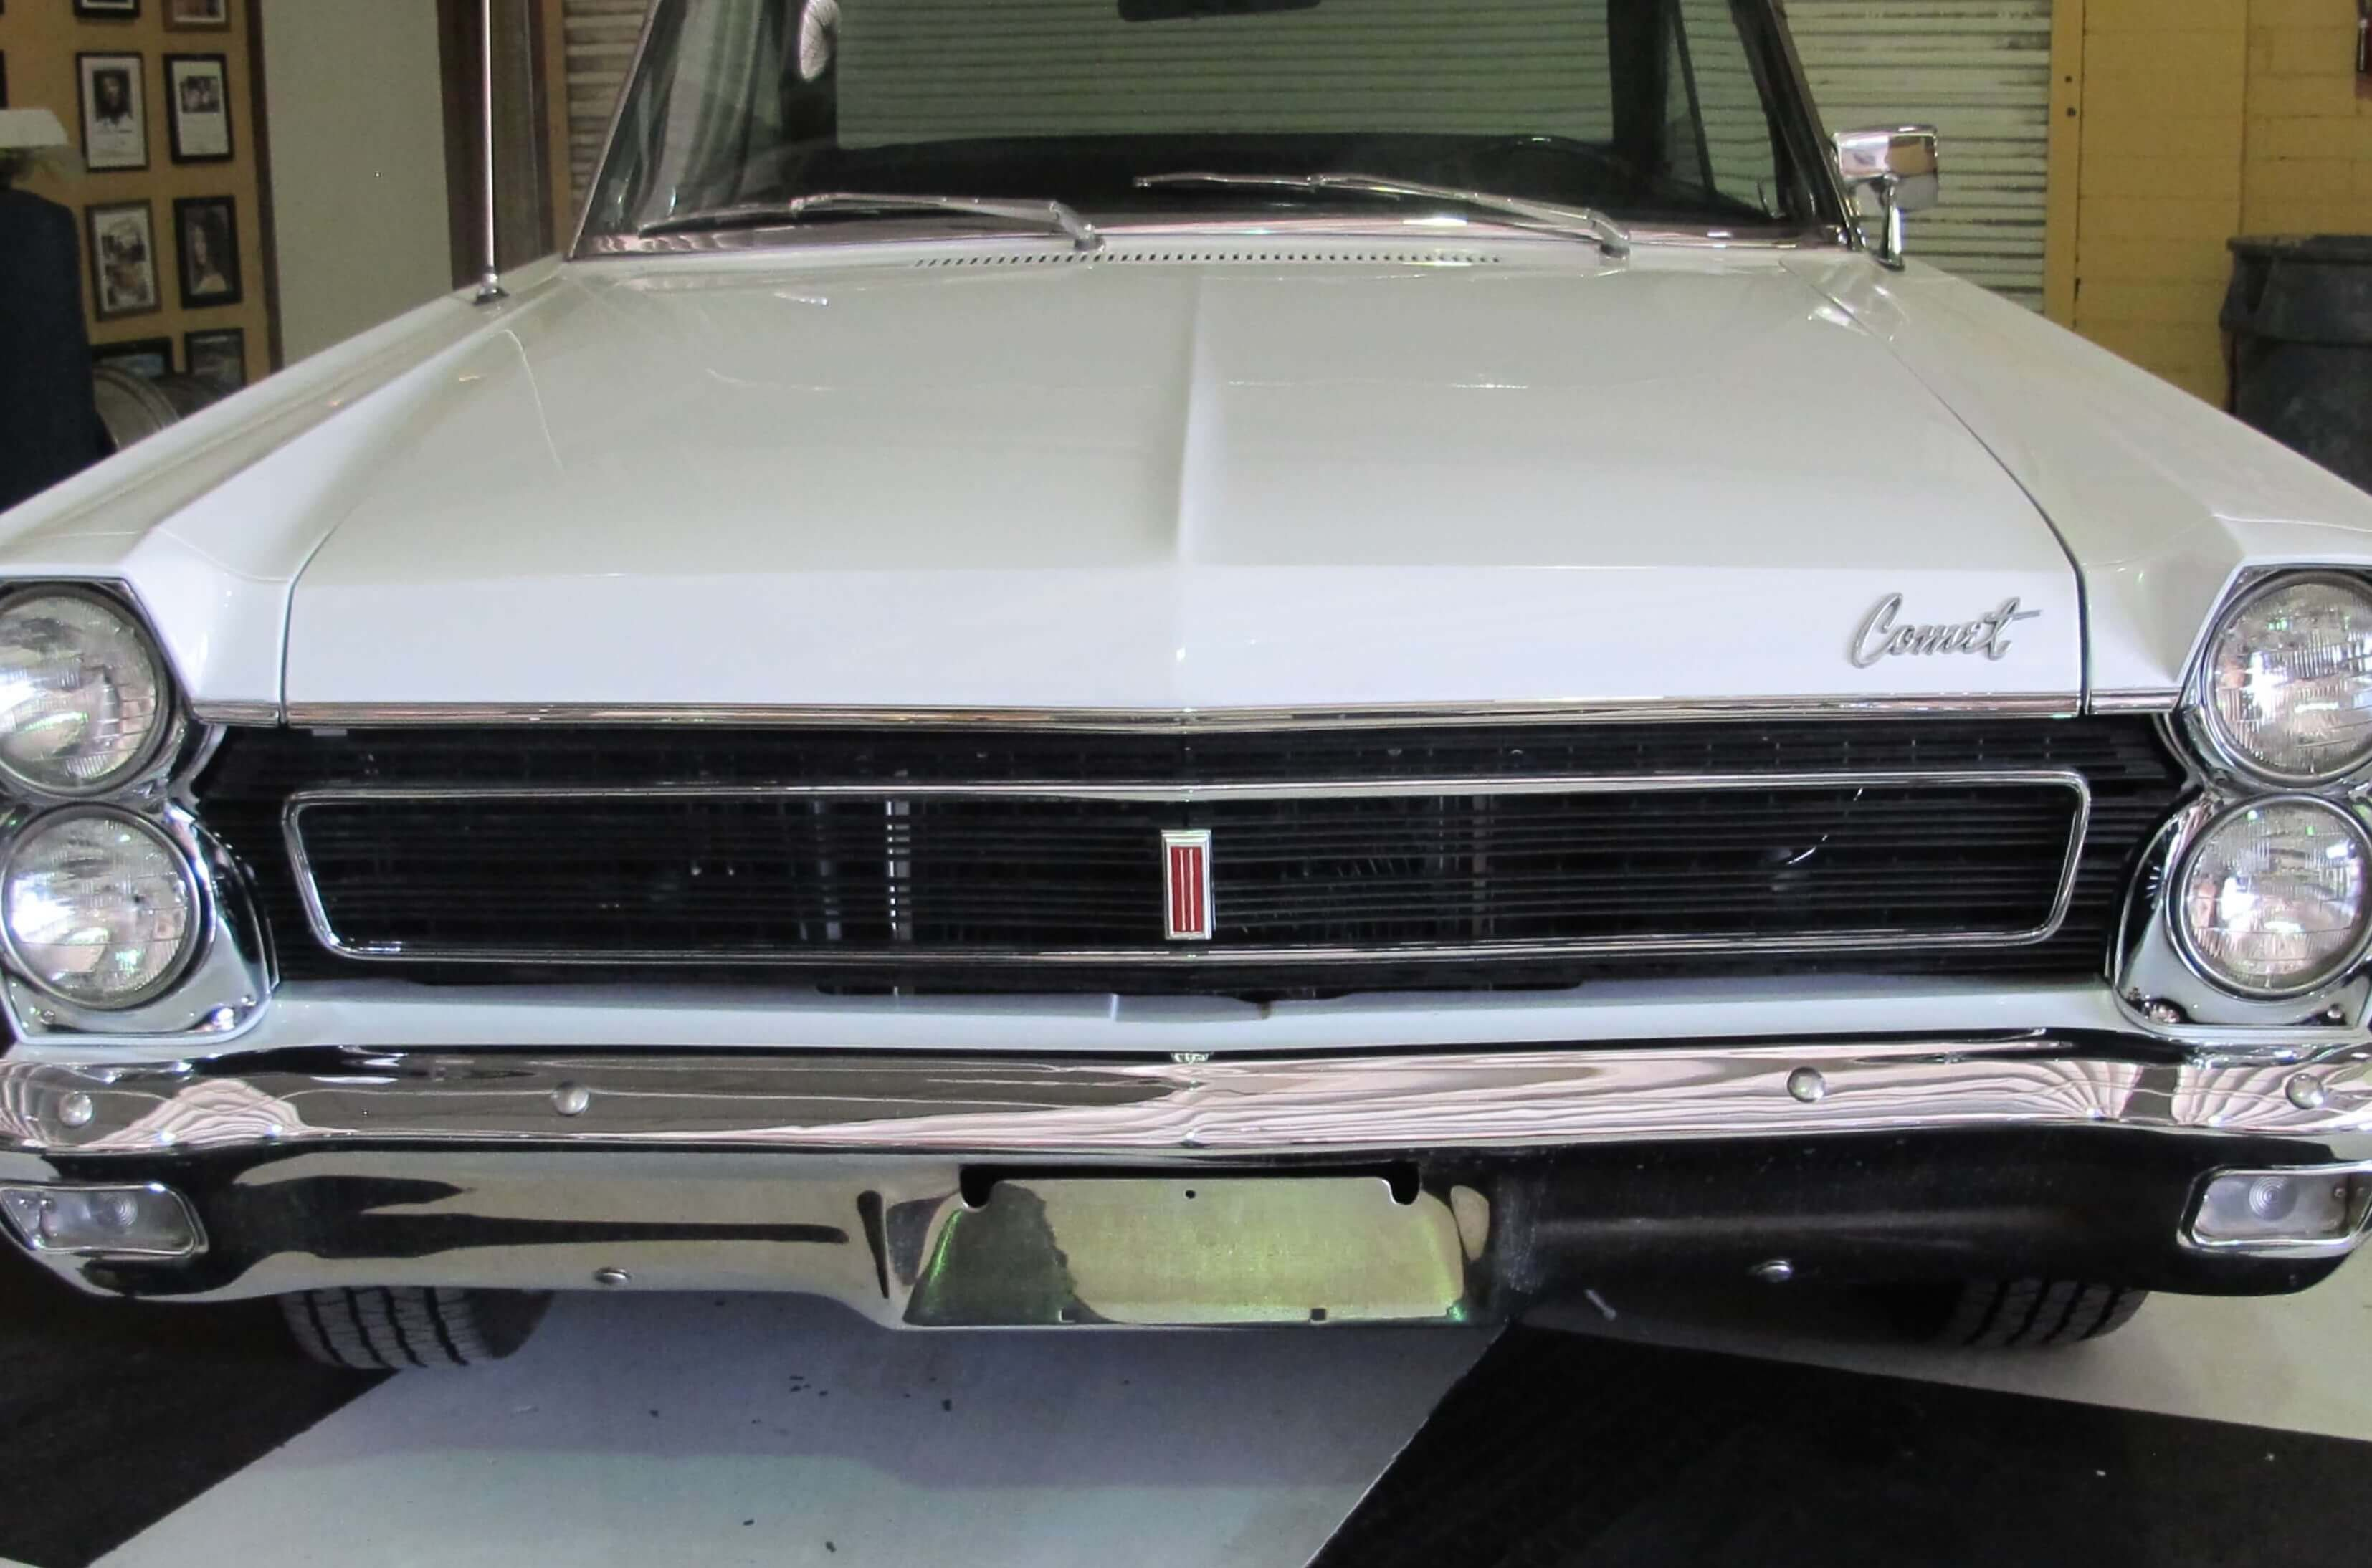 Ron's 1965 Mercury Cyclone - Holley My Garage